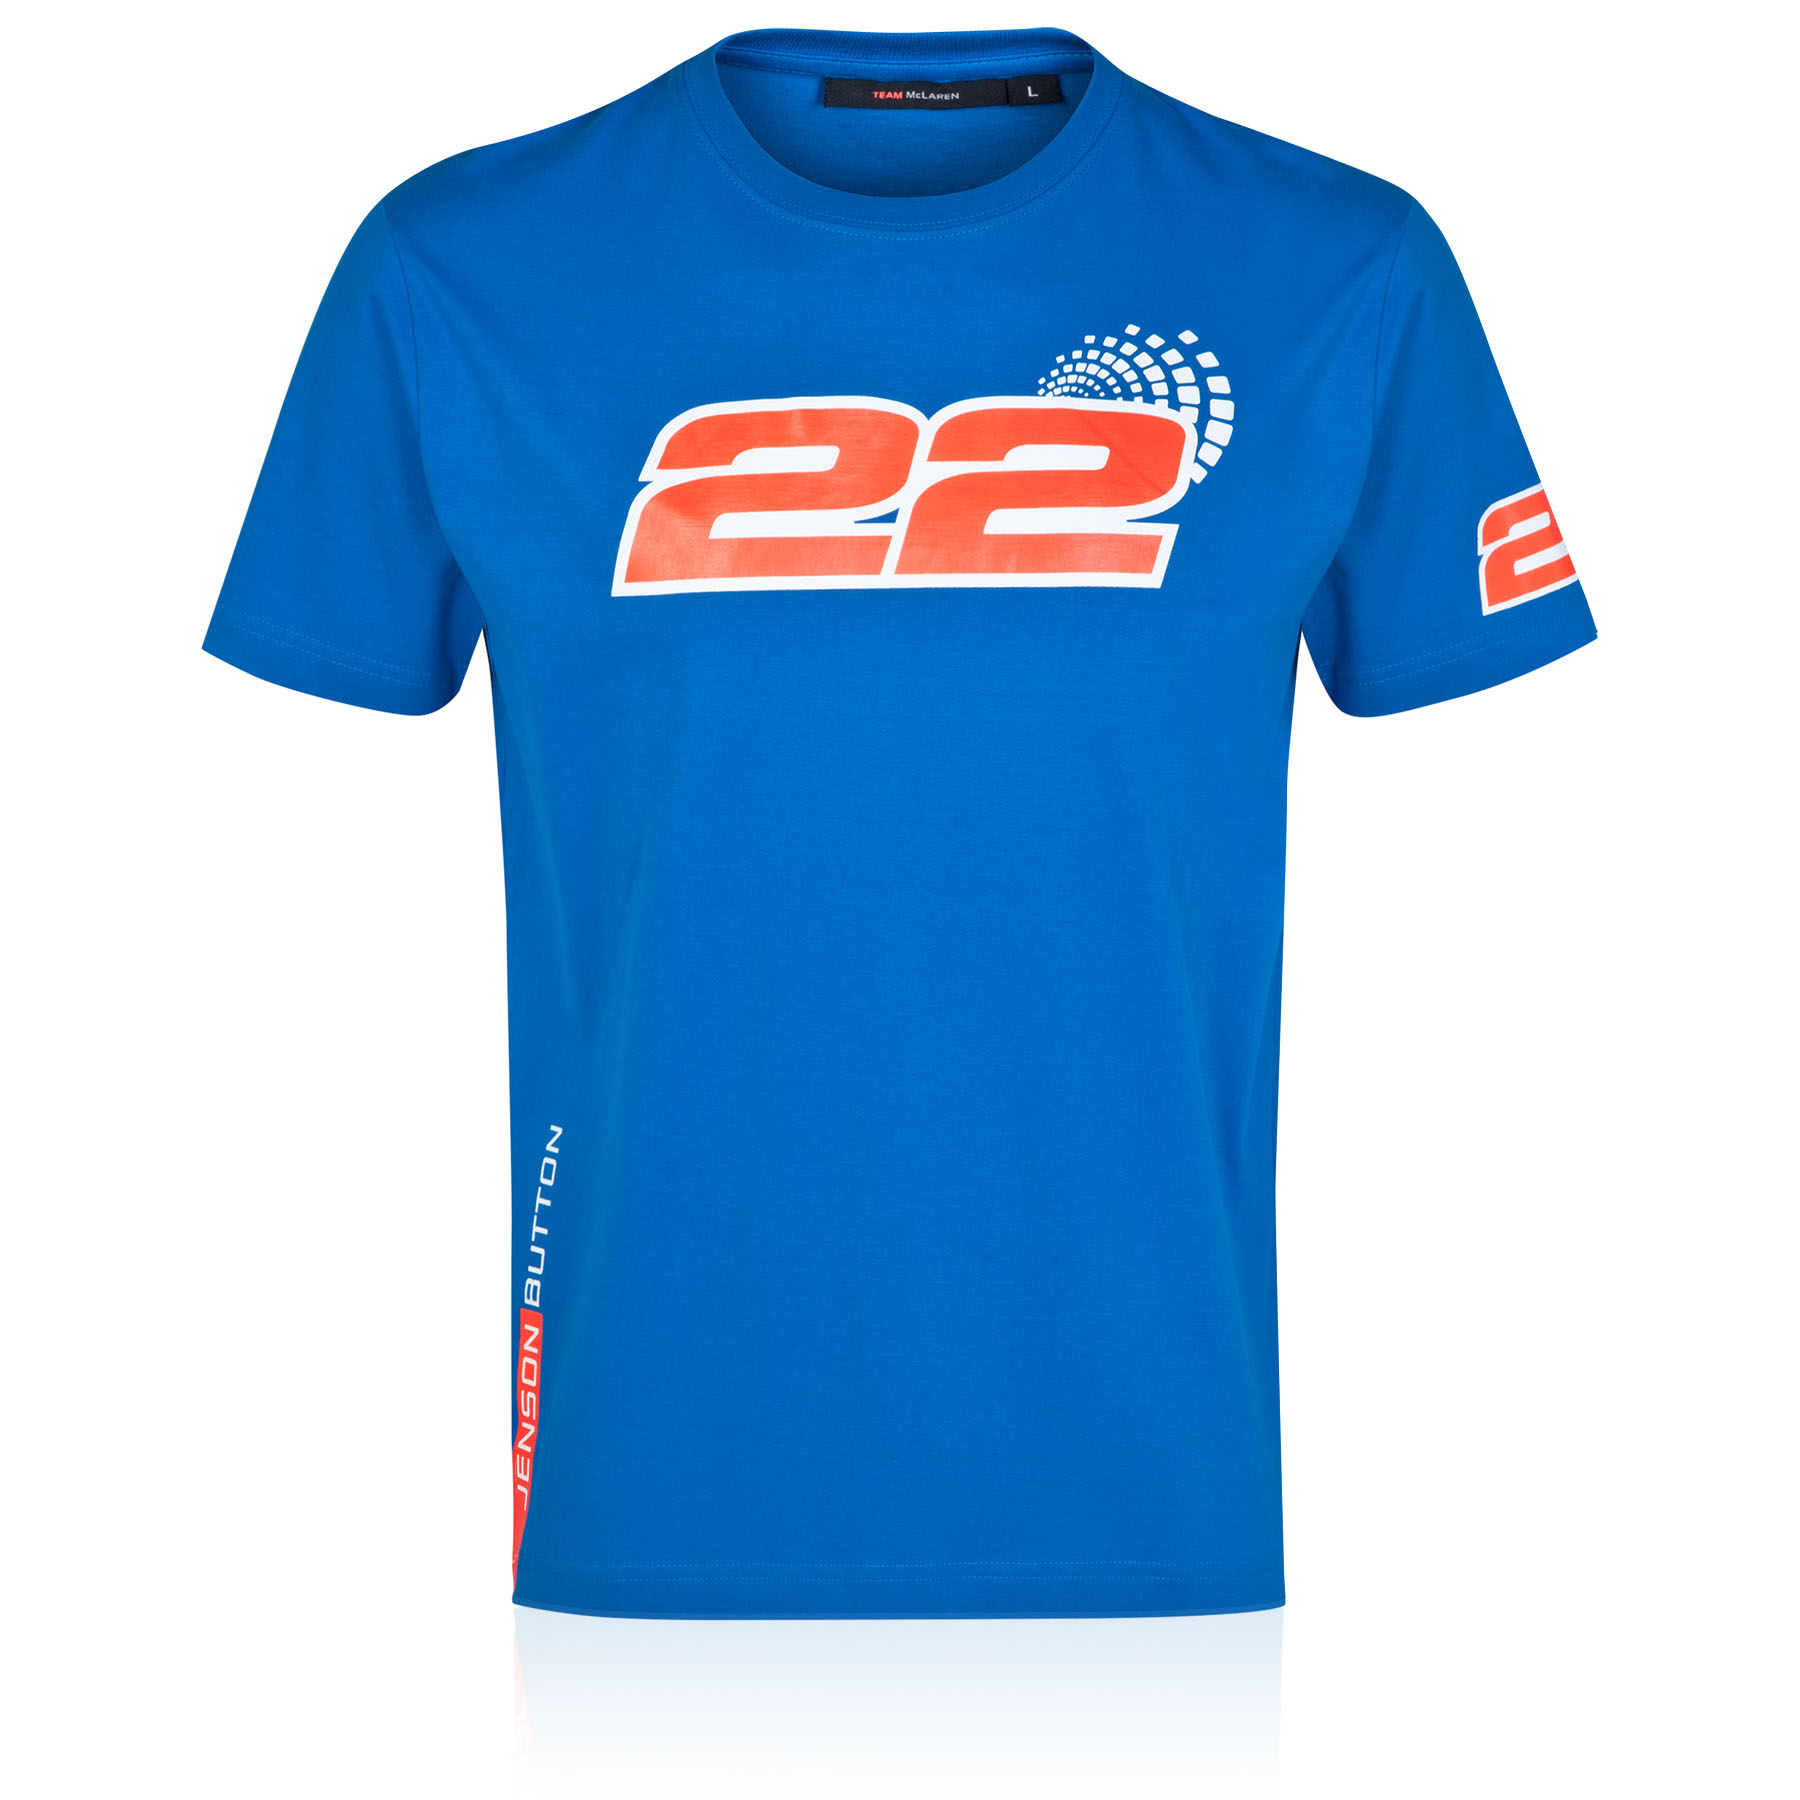 McLaren Mercedes Jenson Button 22 T-Shirt